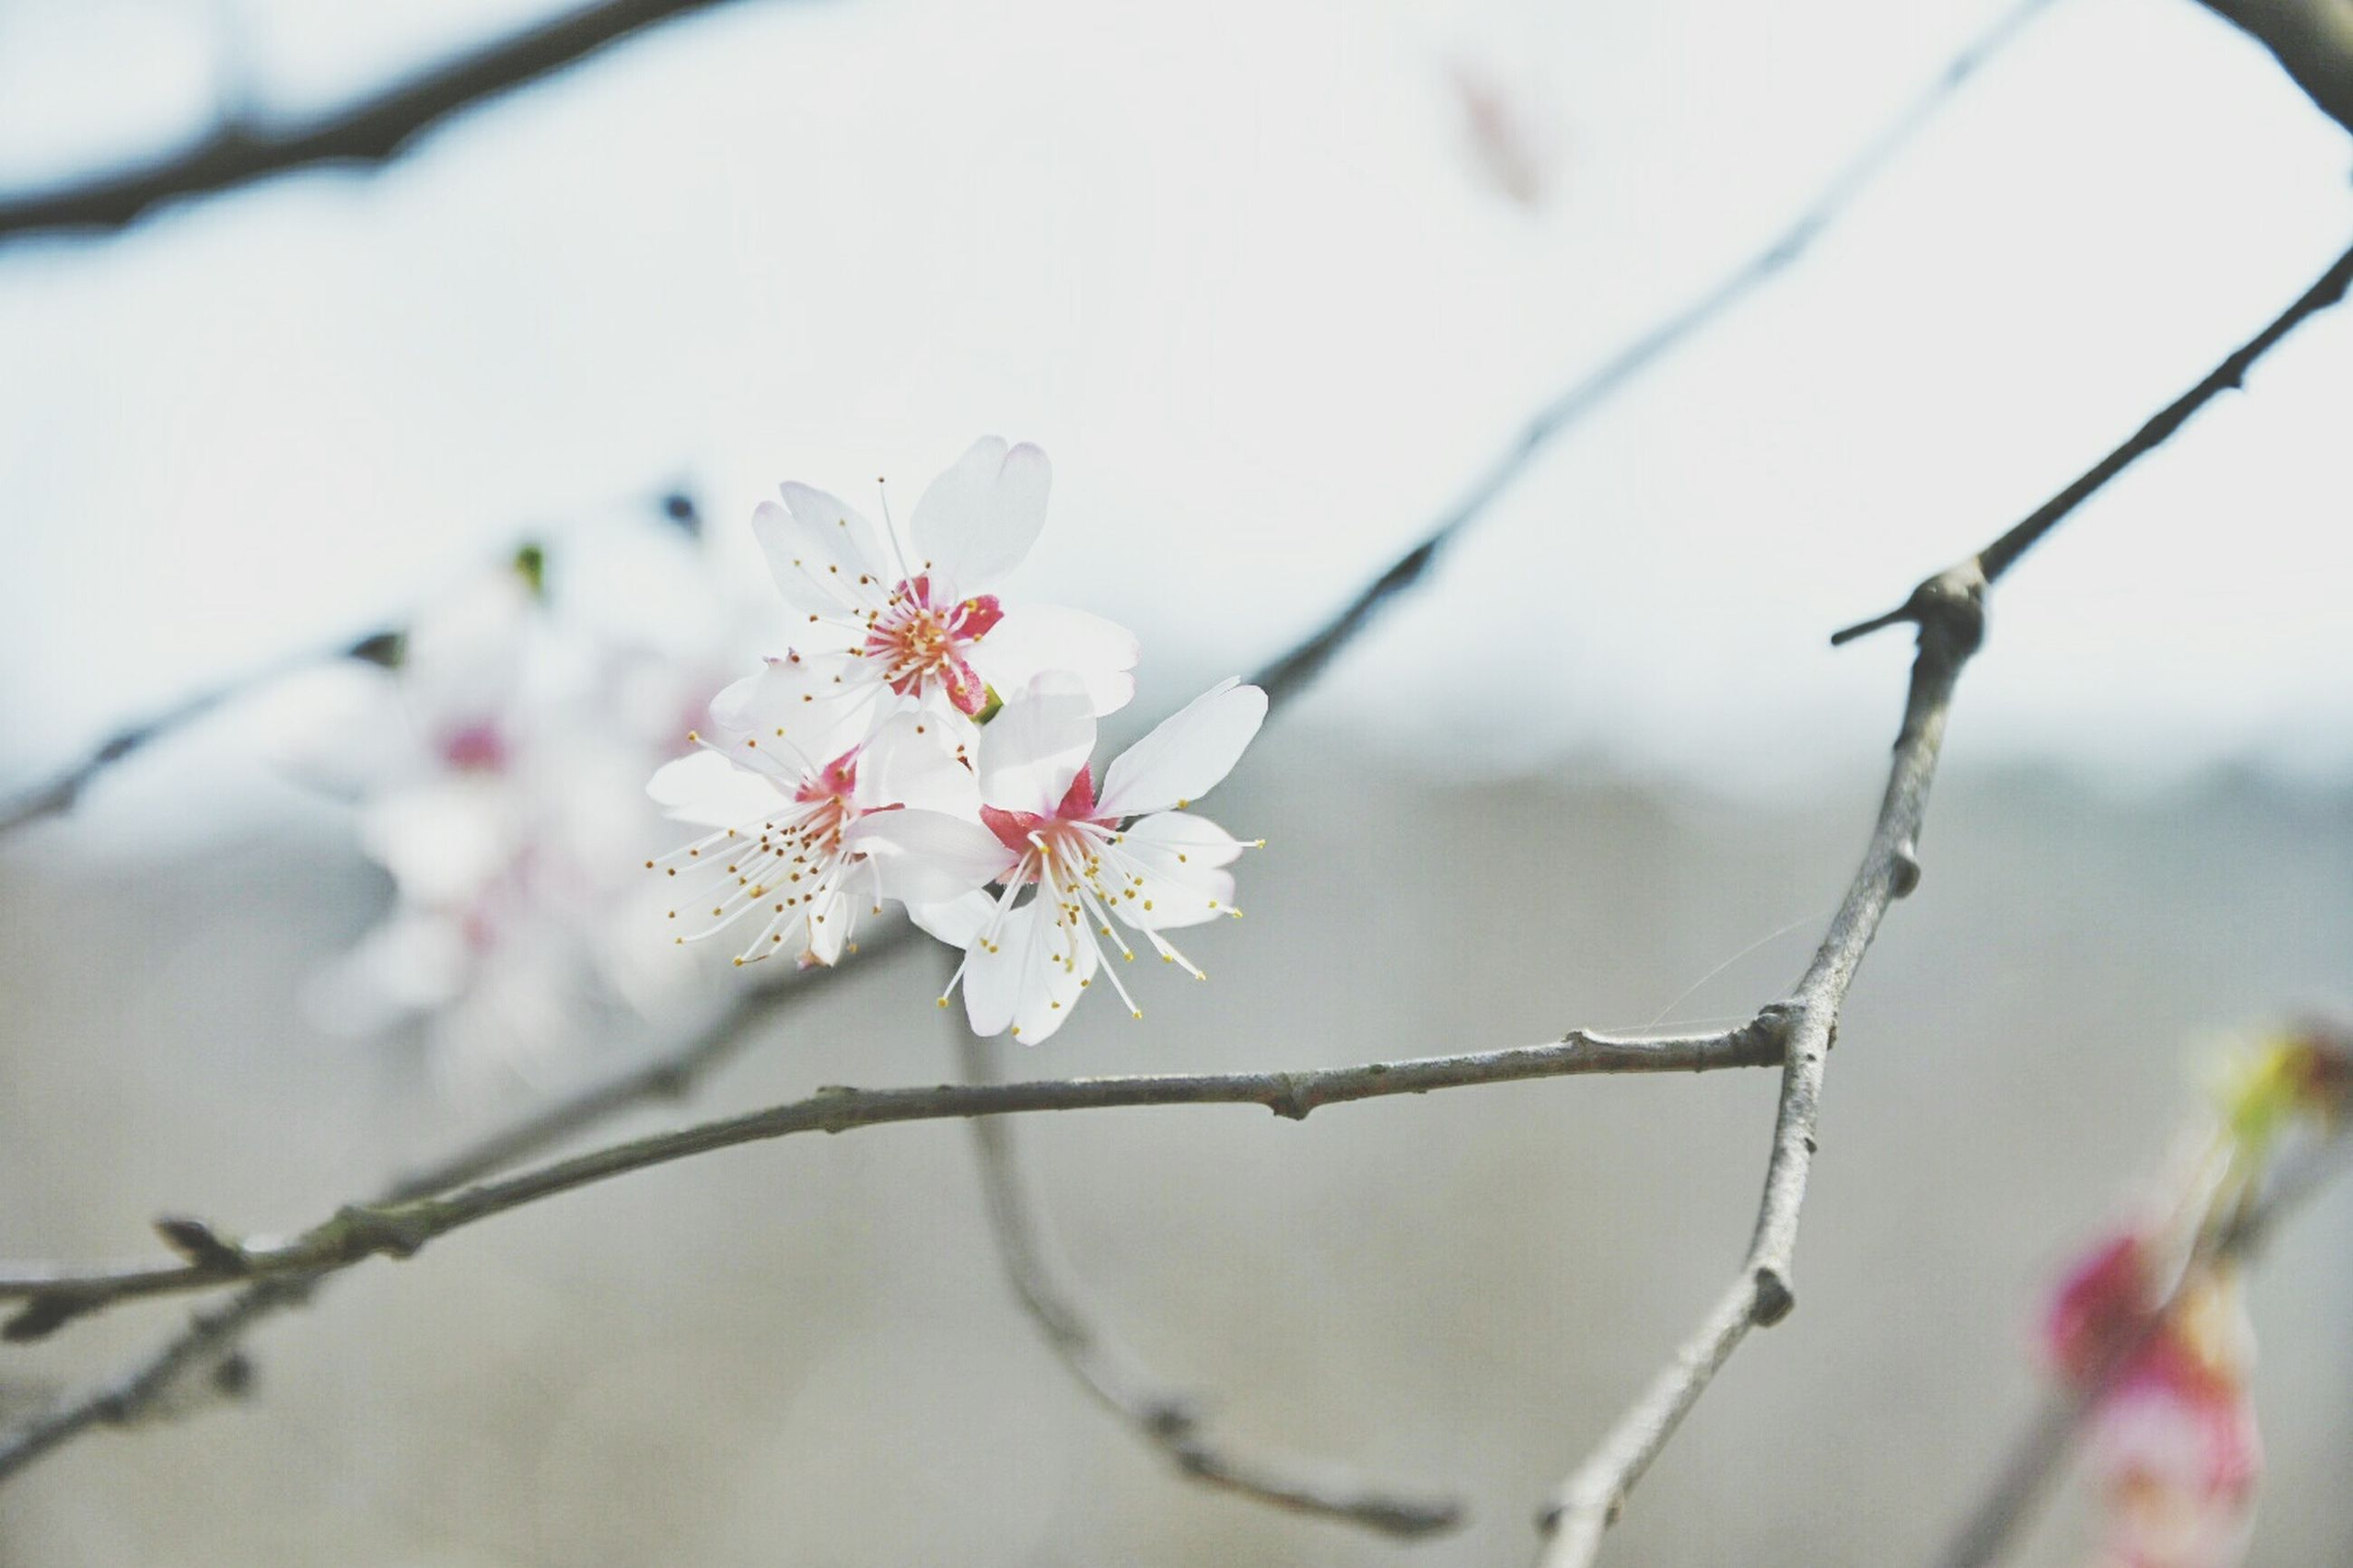 flower, branch, freshness, growth, fragility, focus on foreground, beauty in nature, twig, close-up, nature, petal, blossom, tree, blooming, cherry blossom, selective focus, in bloom, springtime, stem, pink color